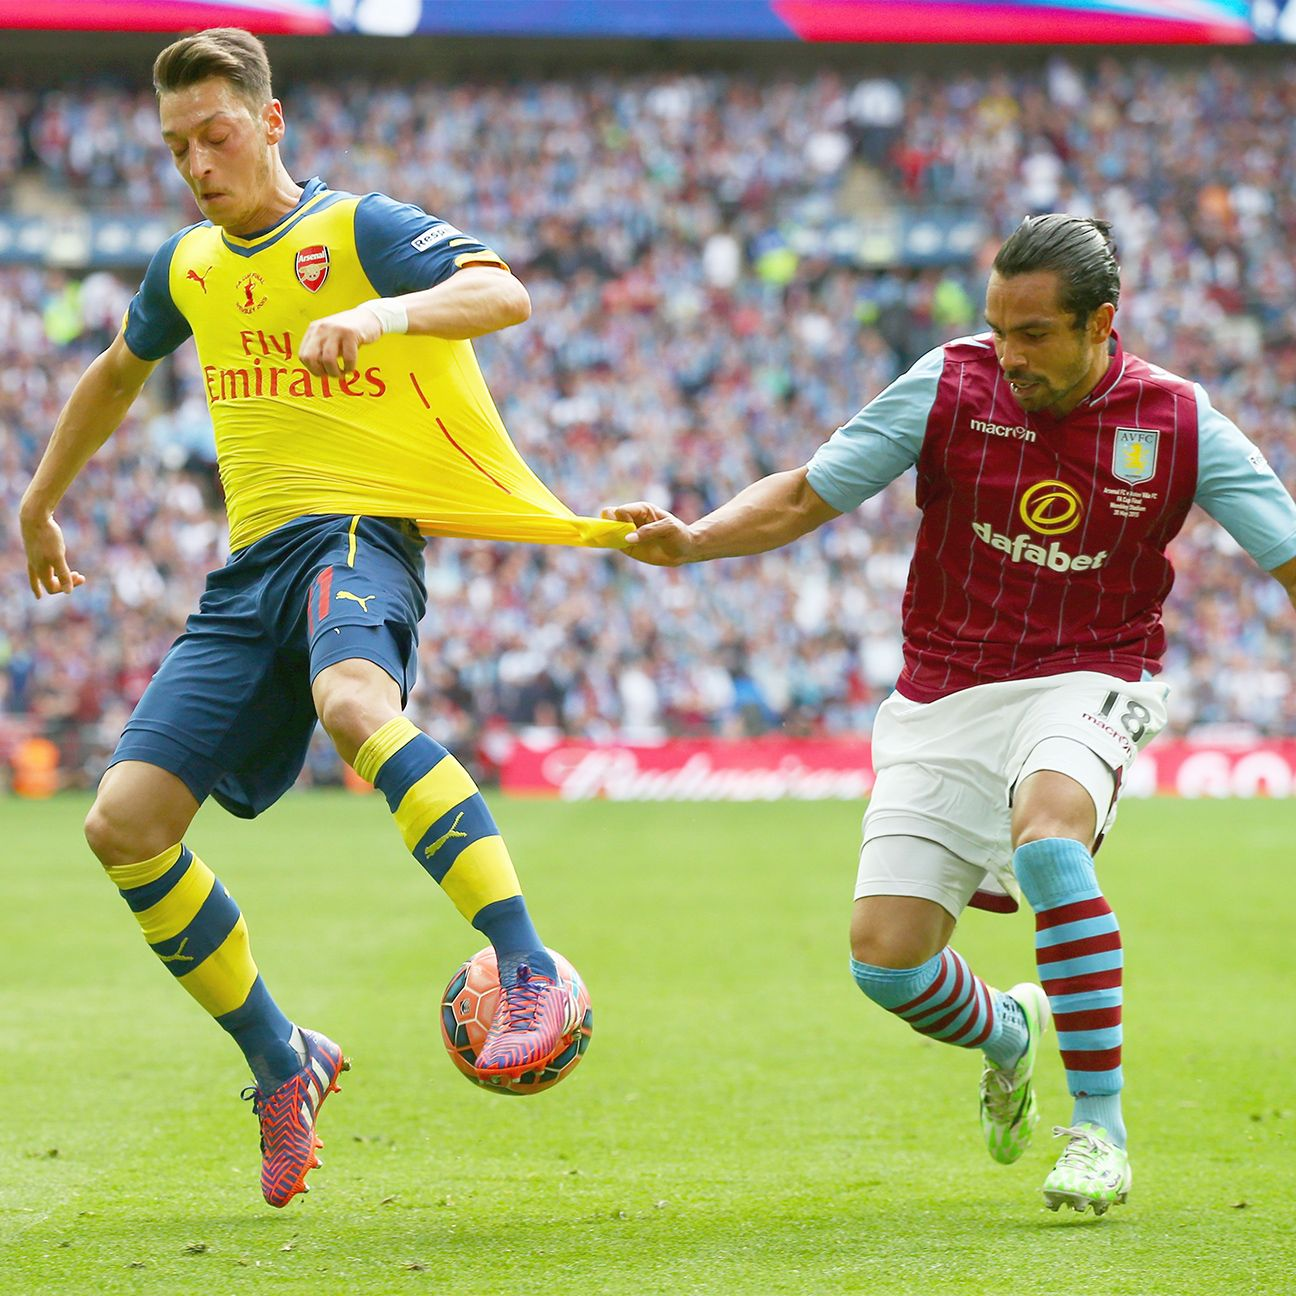 Last season, Arsenal midfielder Mesut Ozil led the league in chances created last.